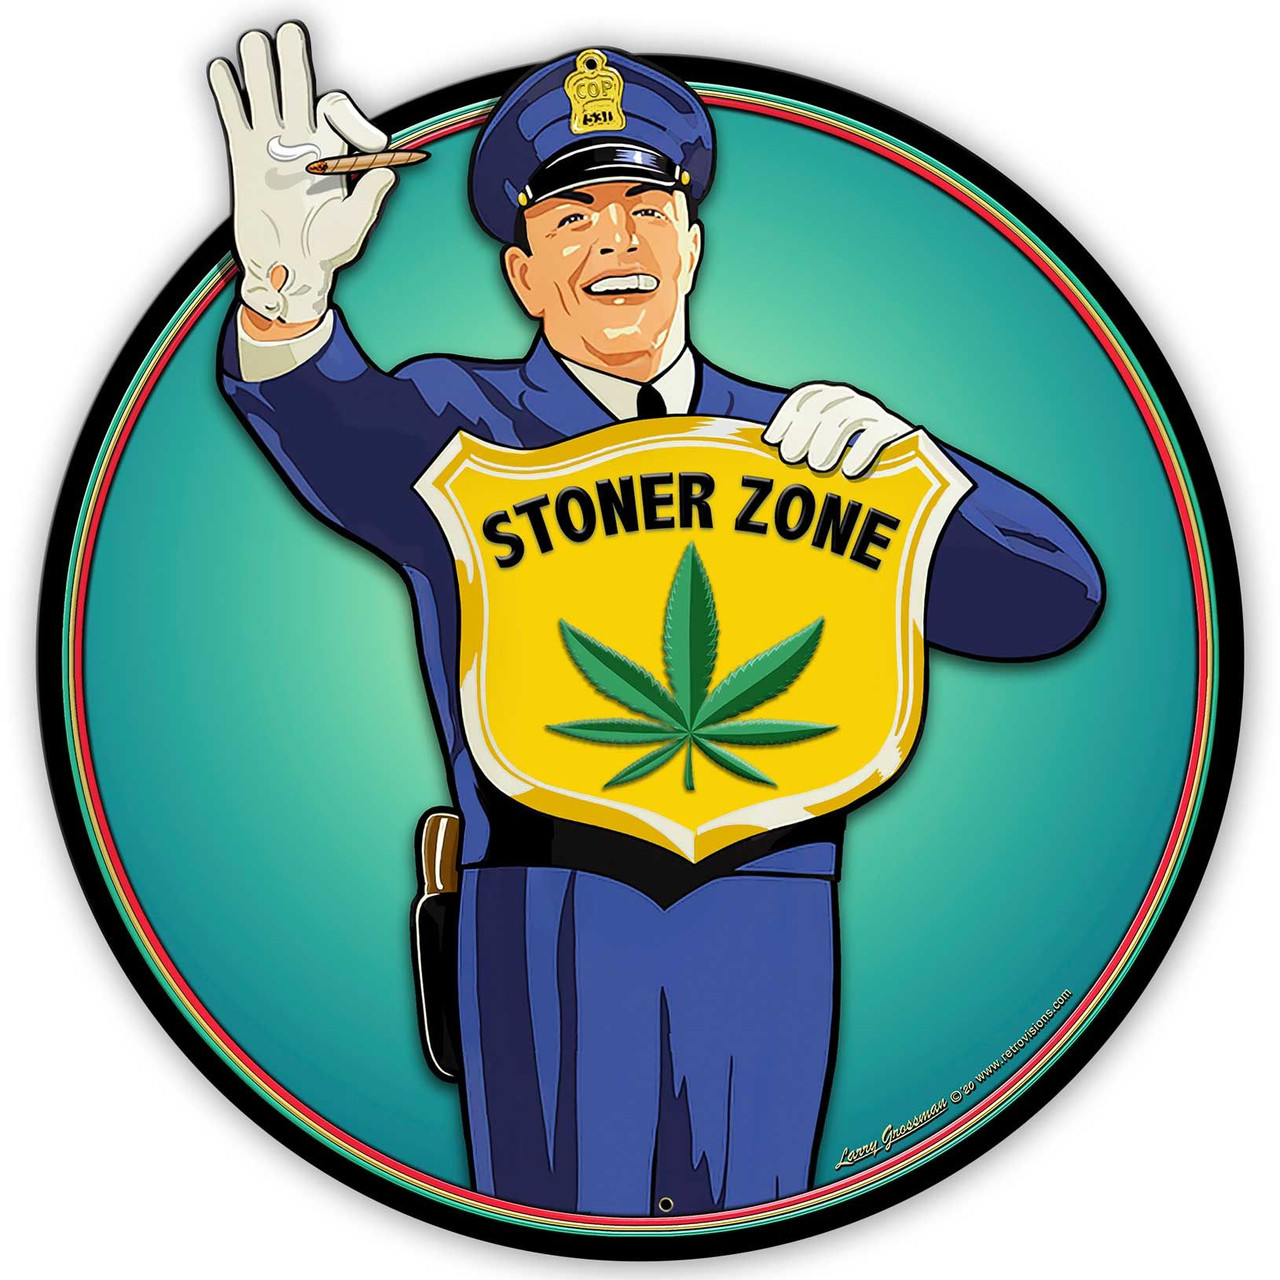 Guard Stoner Zone Metal Sign 28 x 28 Inches